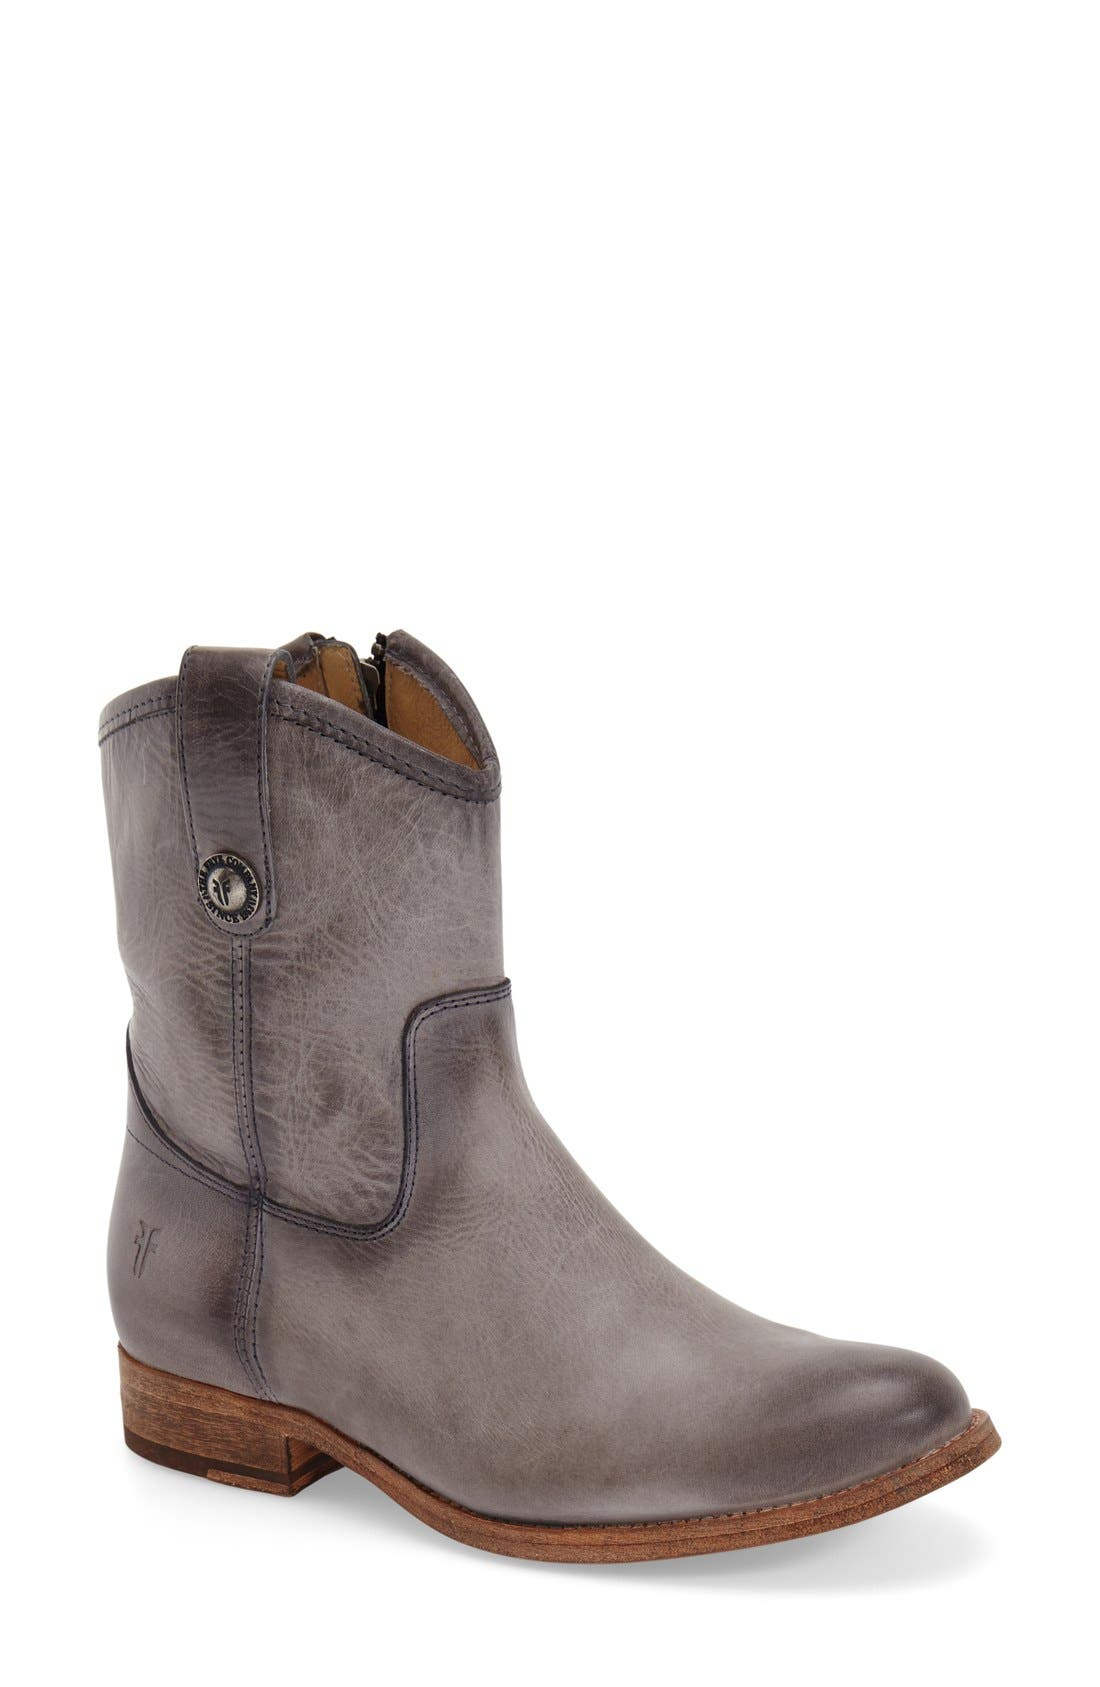 Alternate Image 1 Selected - Frye 'Melissa Button' Short Boot (Women)